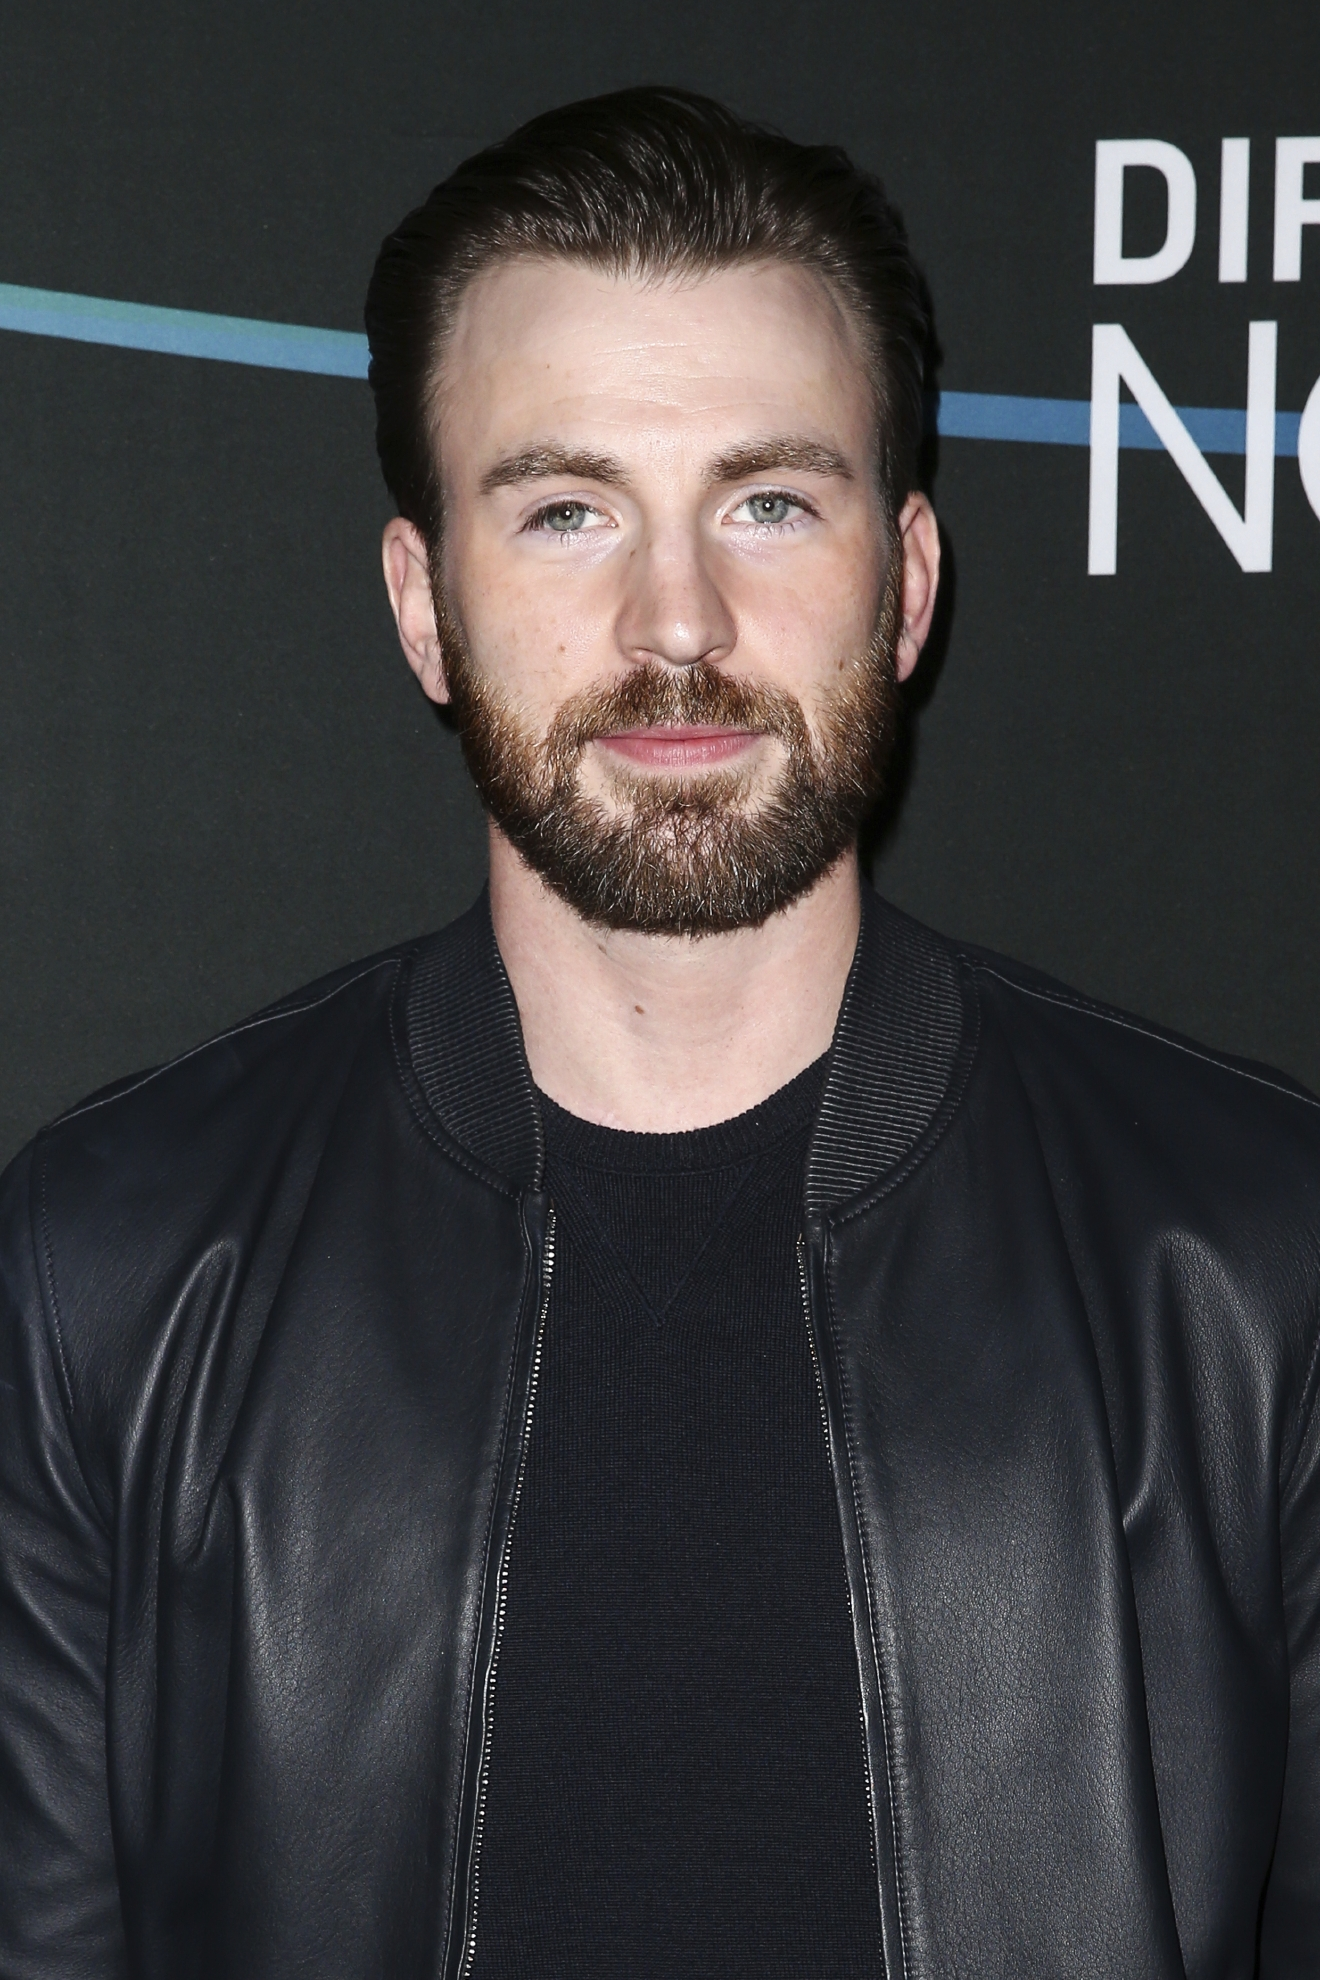 Chris Evans attends the 2017 DIRECTV NOW Super Saturday Night Concert at Club Nomadic on Saturday, Feb. 4, 2017 in Houston, Texas. (Photo by John Salangsang/Invision/AP)